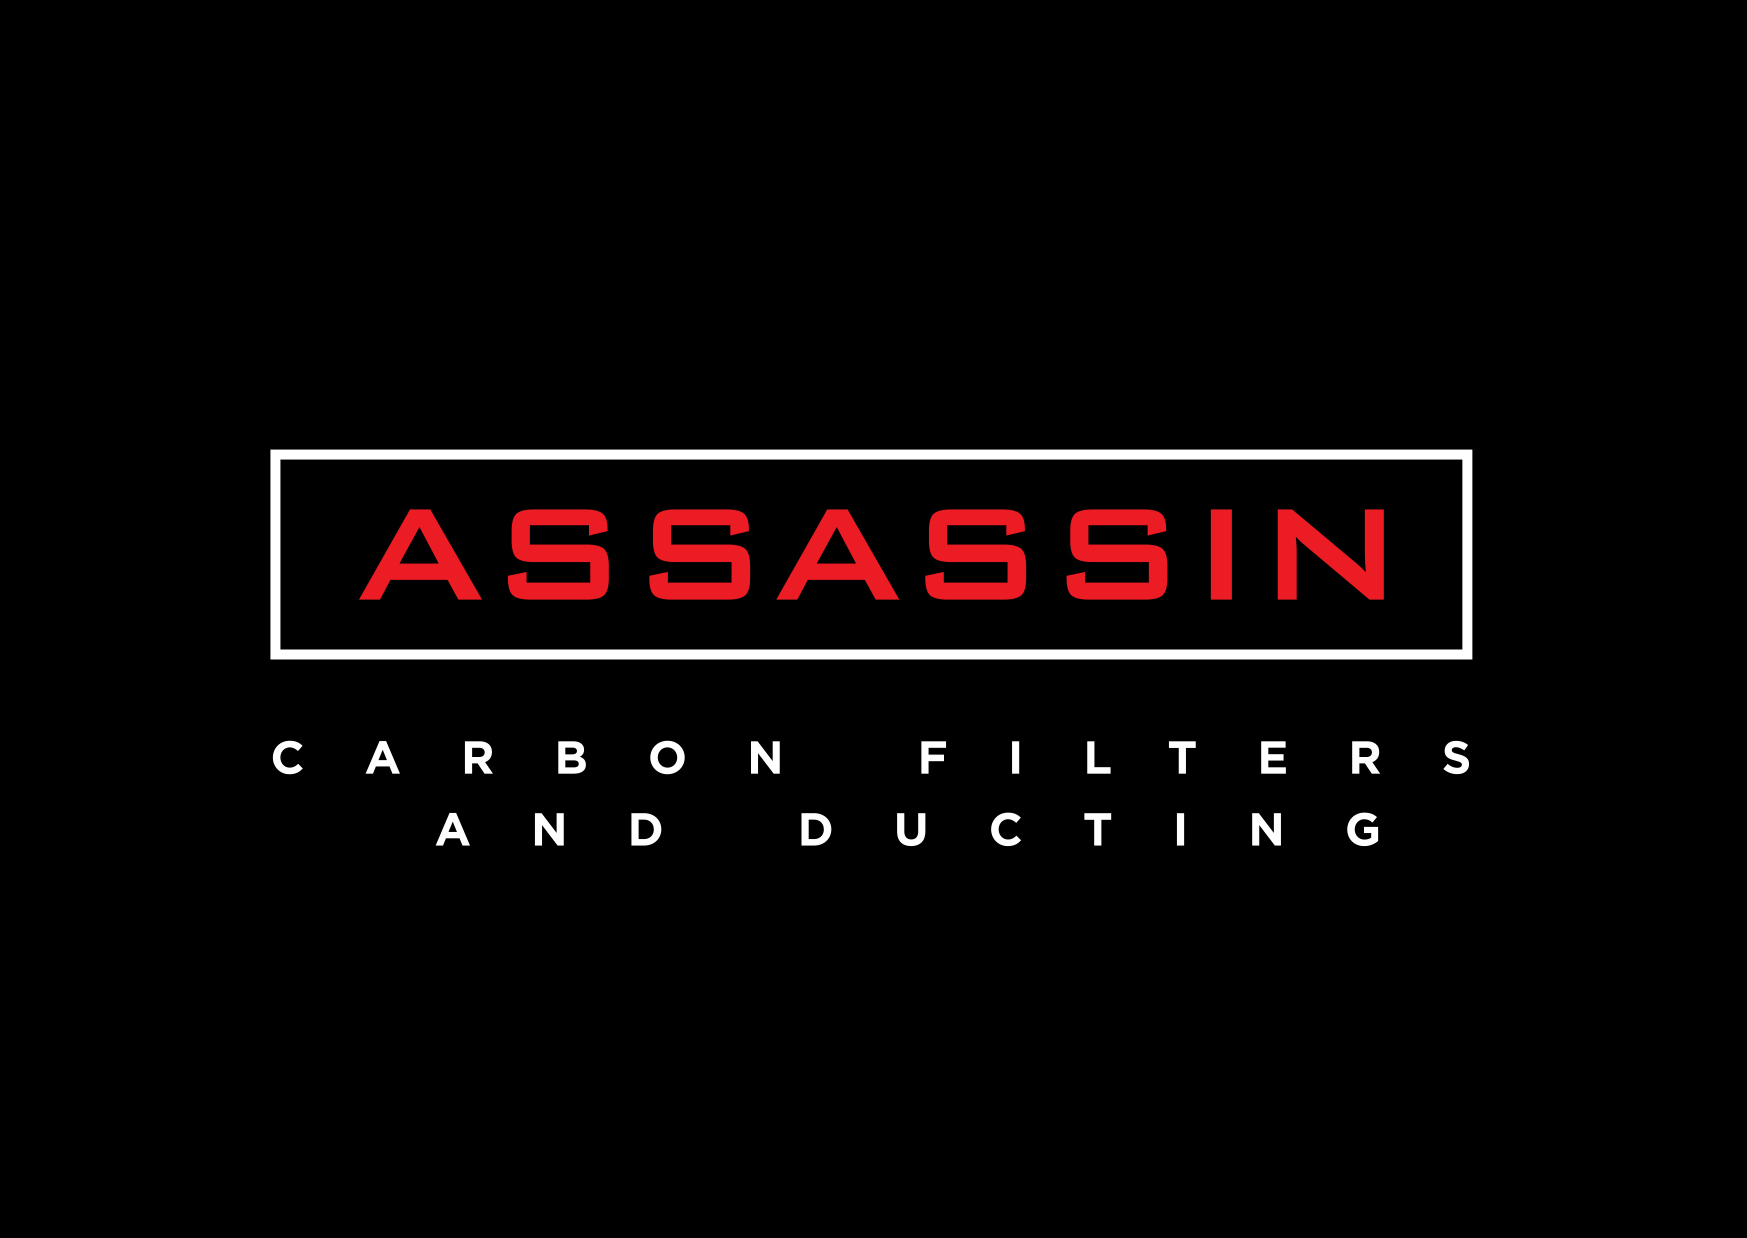 Assassin - Carbon Filters and Ducting